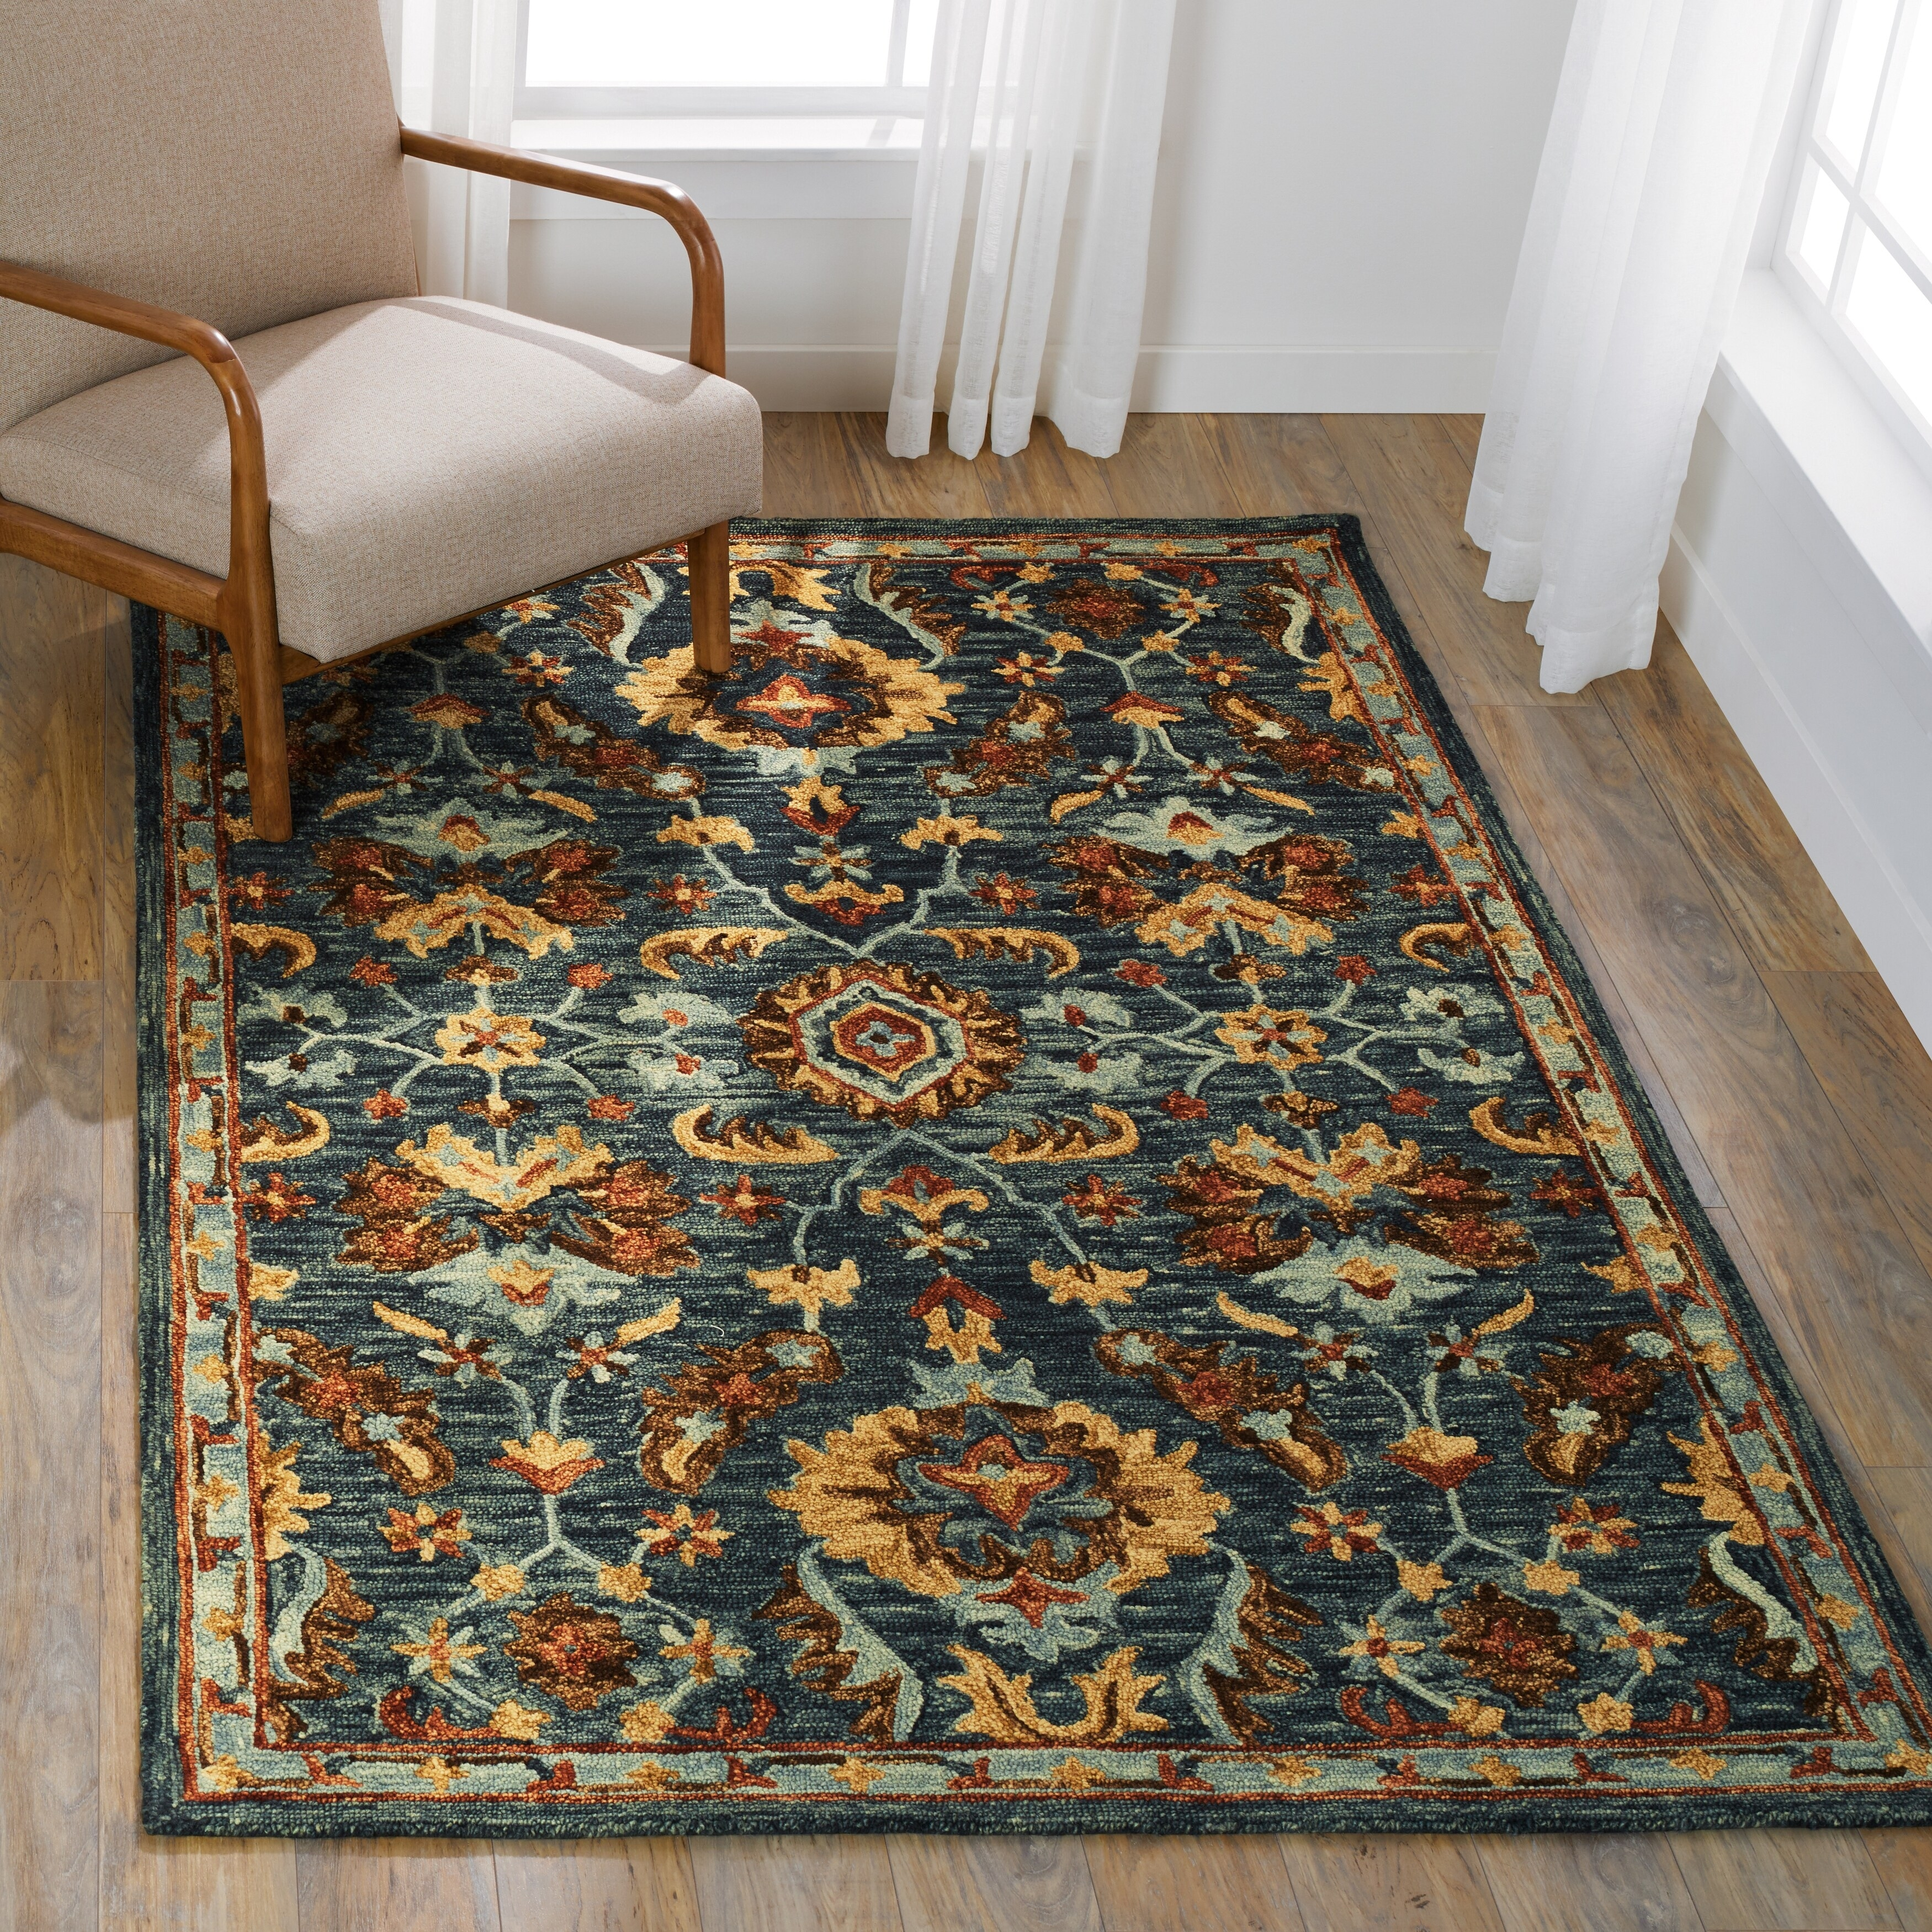 Wool Hand Hooked Traditional Rug